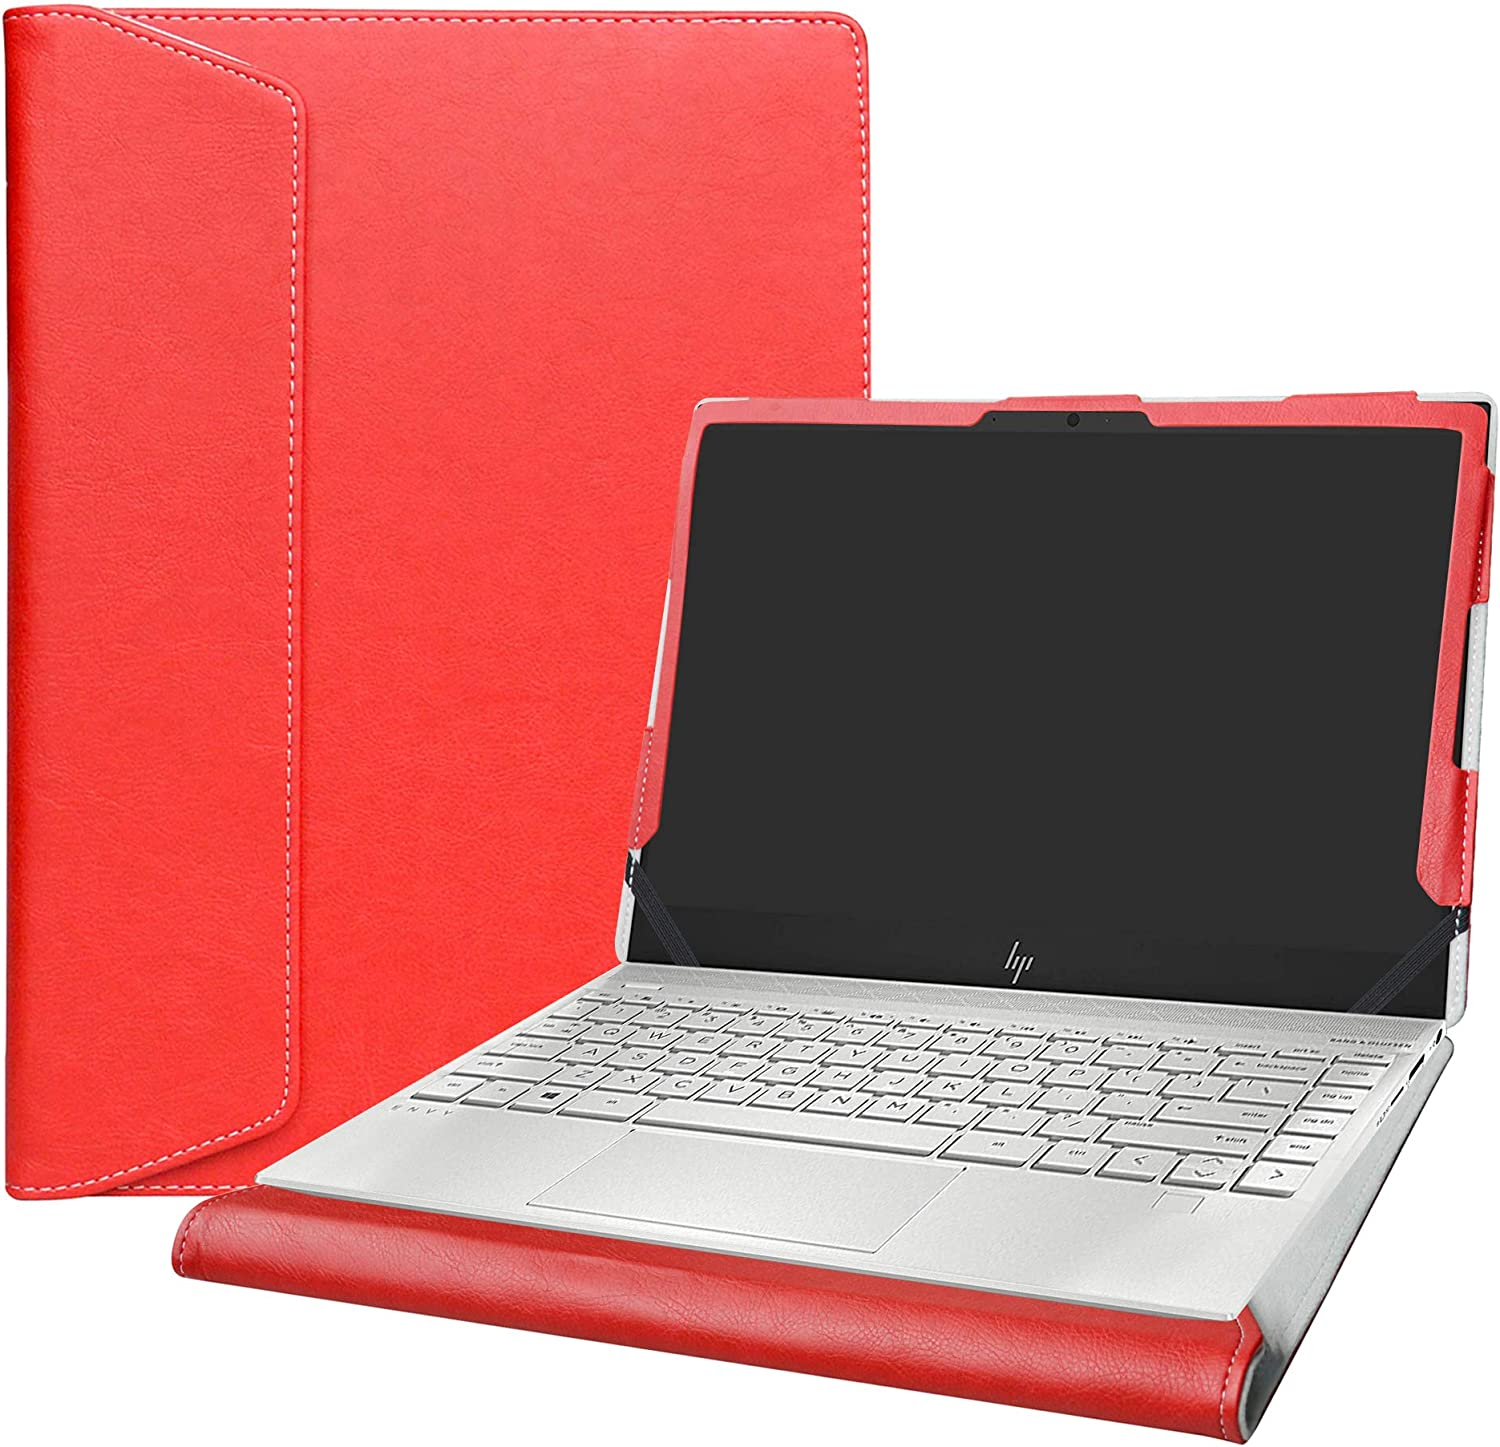 """Alapmk Protective Case Cover for 13.3"""" HP Envy 13 13-aqXXXX 13-AQ0005NR Series Laptop [Warning:Not fit Envy 13 13-ahXXXX 13-adXXX 13-abXXX Series],Red"""